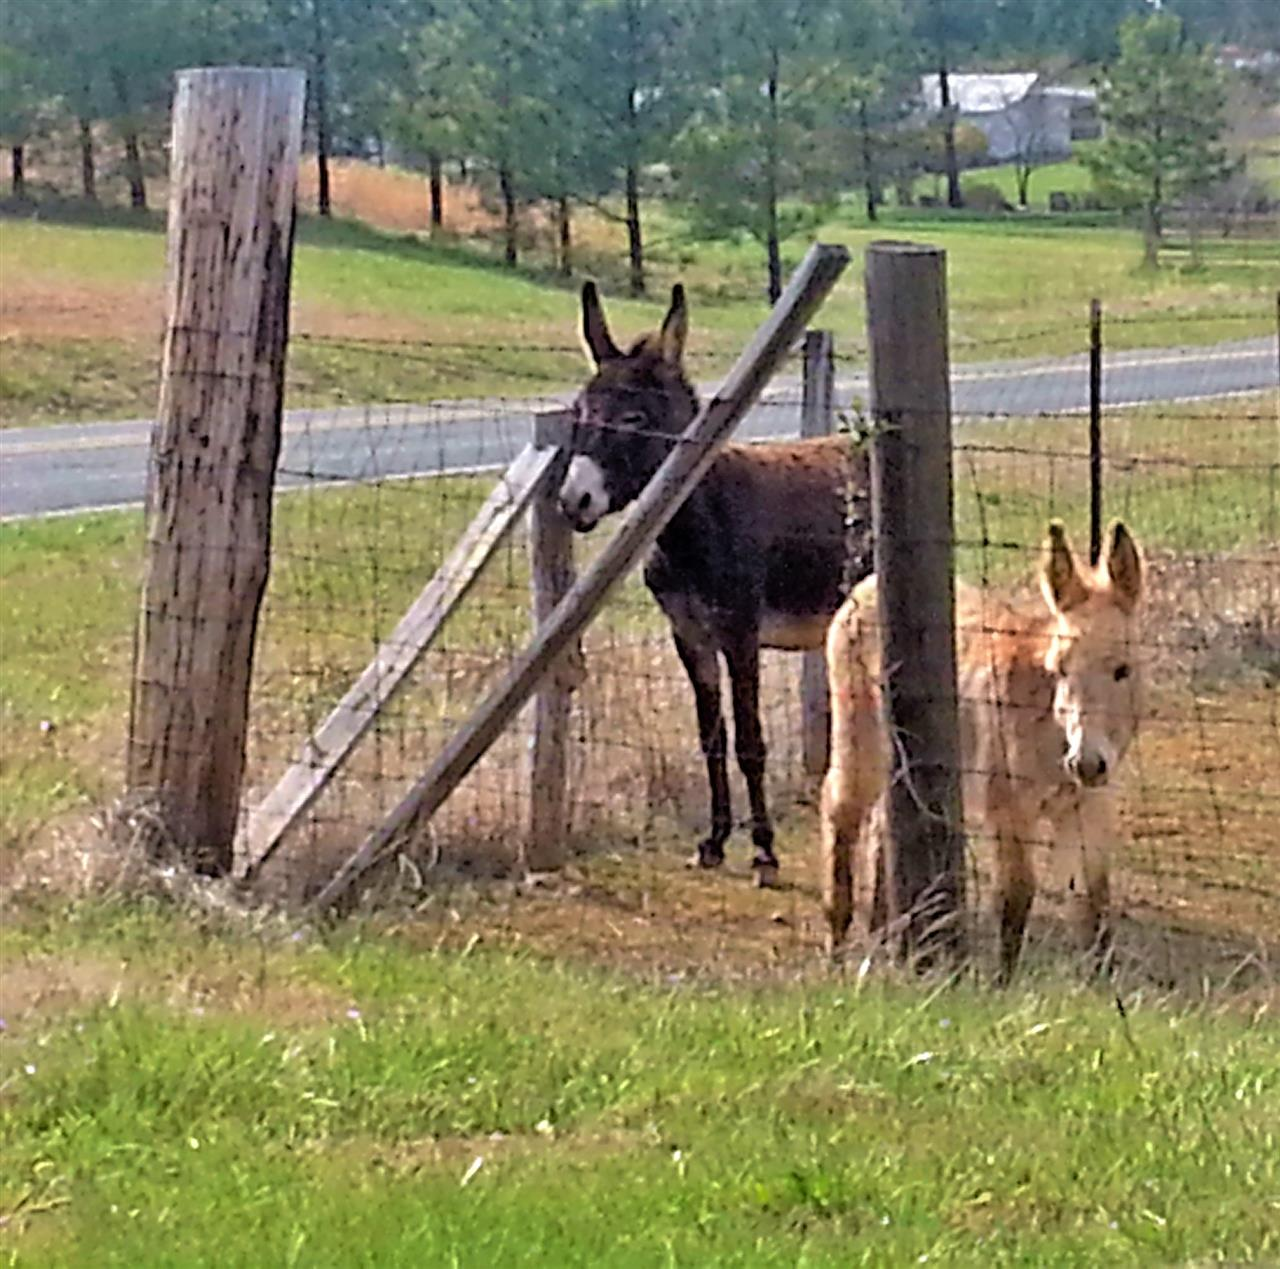 Two donkeys contemplating escape? Bostic, NC